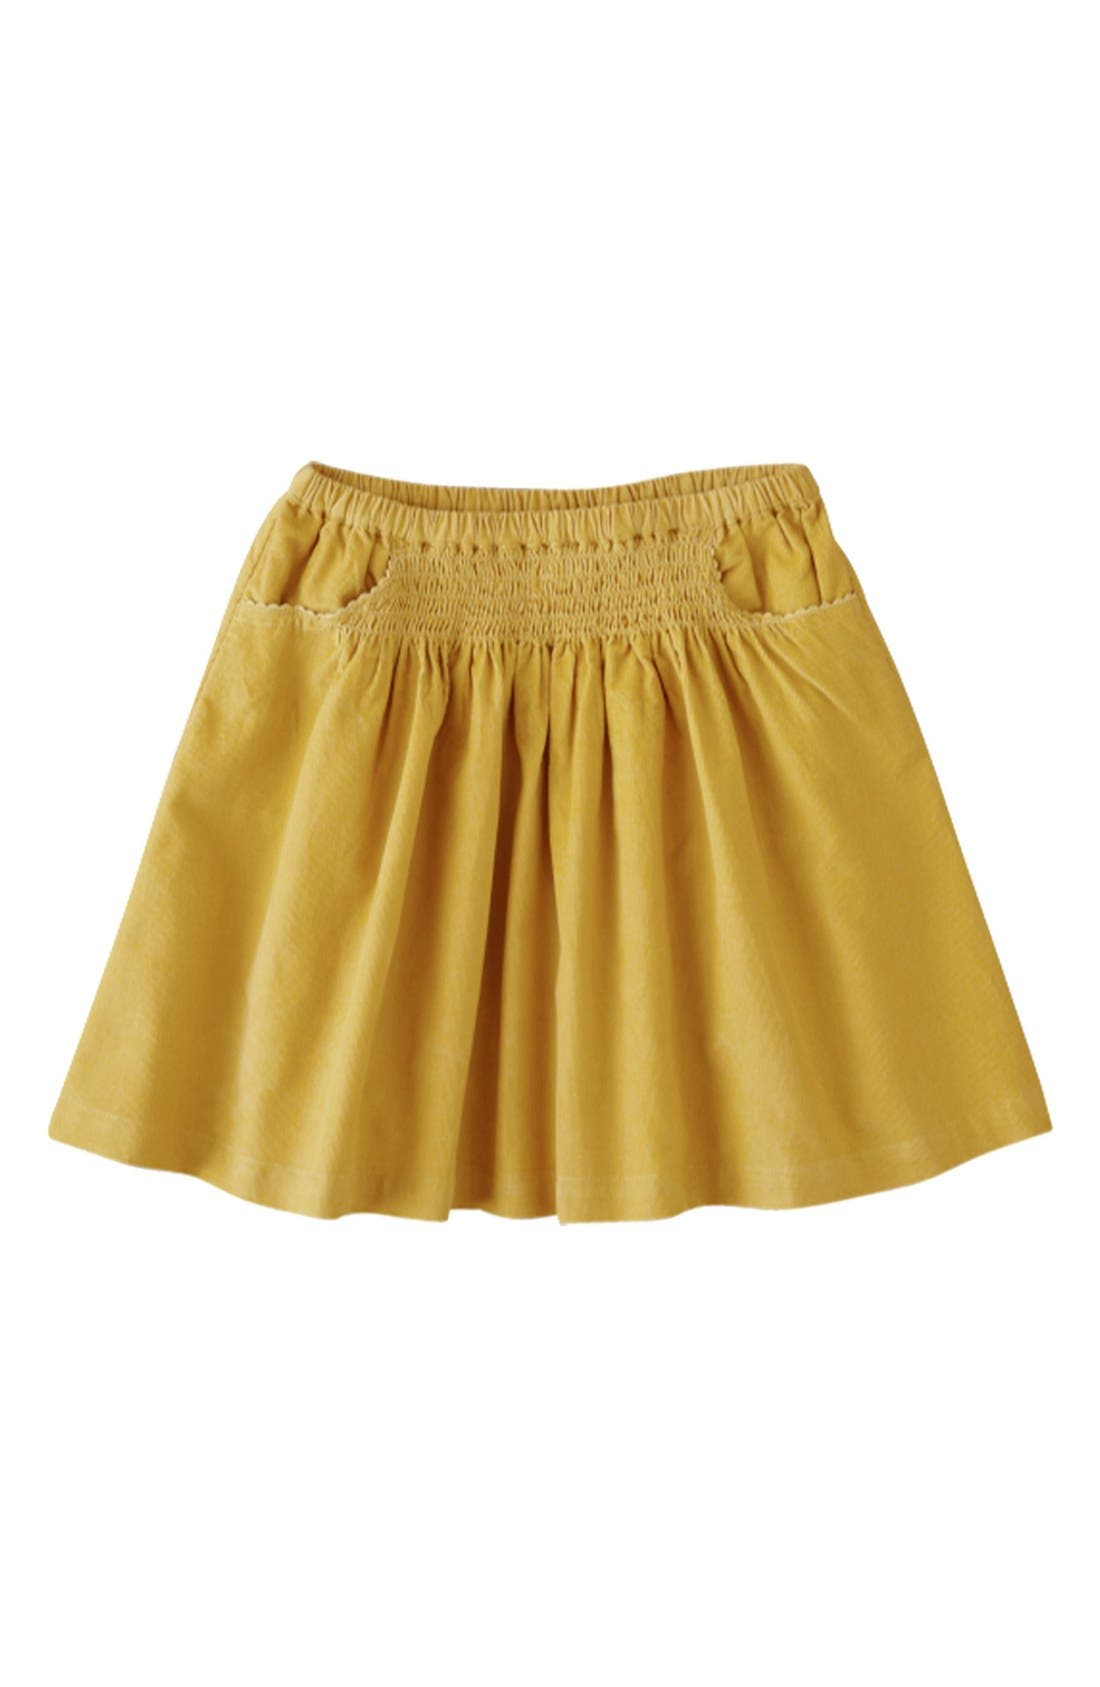 Main Image - Mini Boden 'Everyday' Corduroy Skirt (Little Girls & Big Girls)